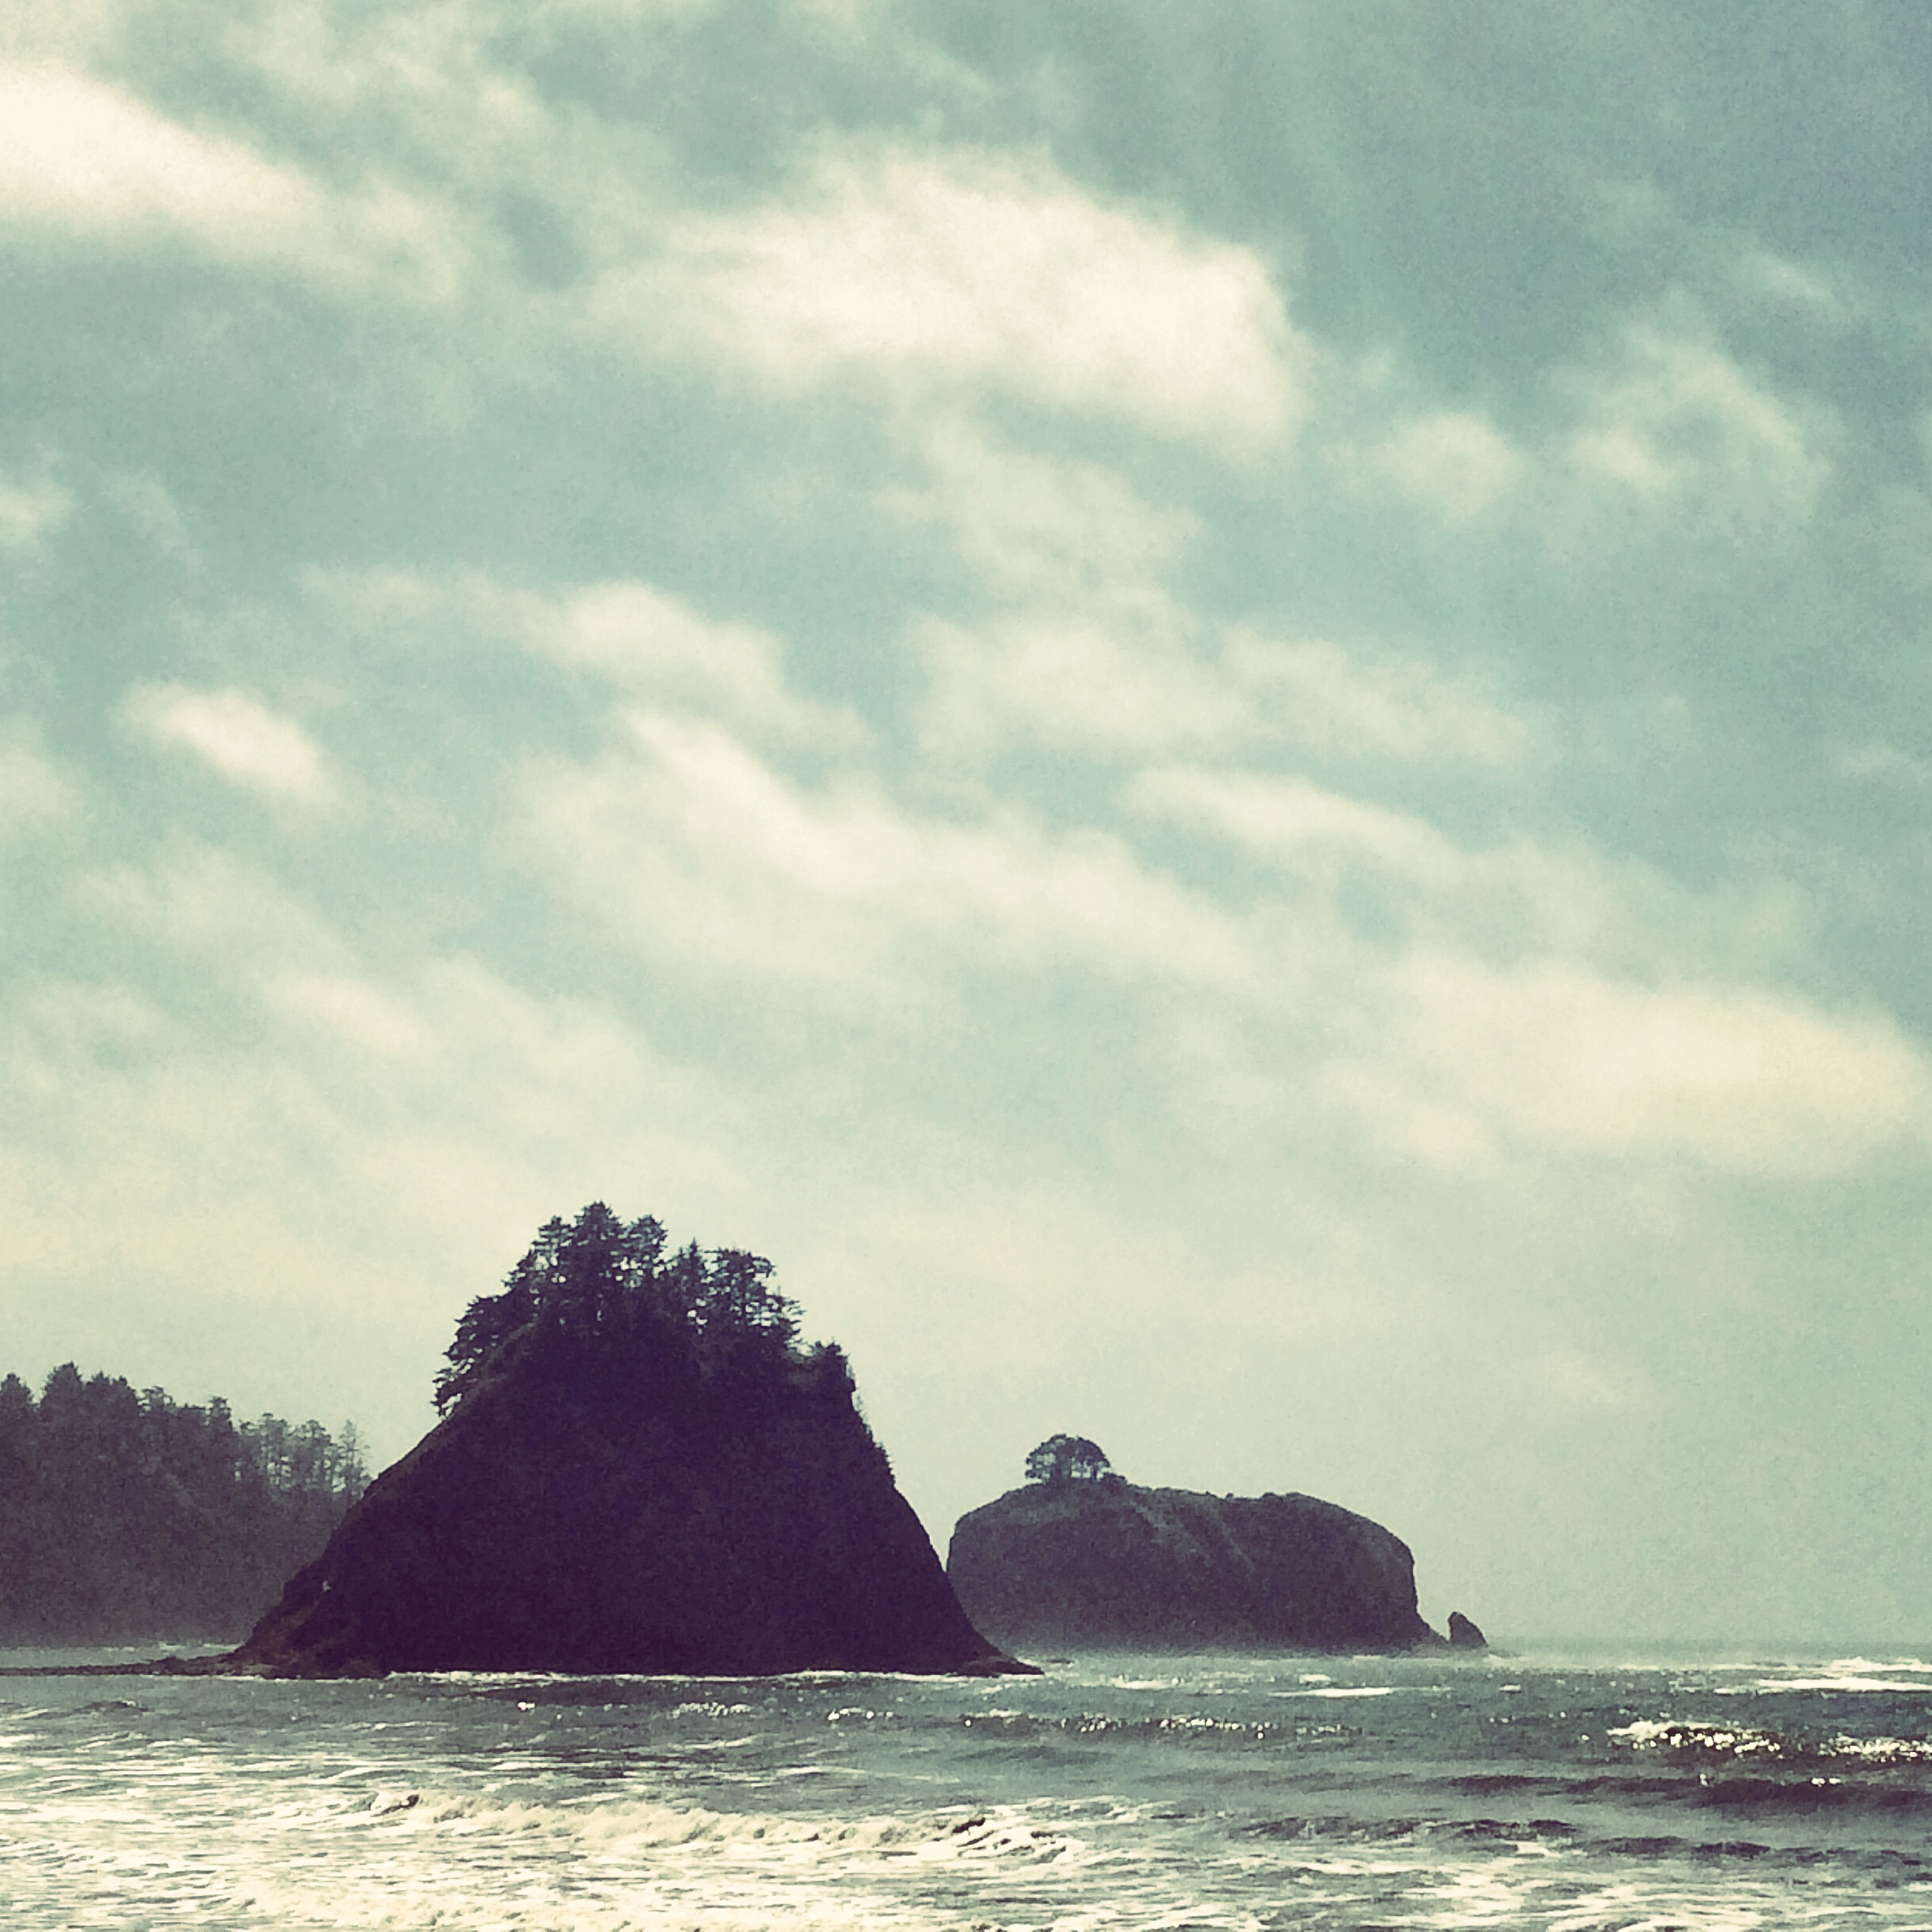 Sea Stacks at Second Beach along the Pacific Coast Highway 101 in Olympic National Park